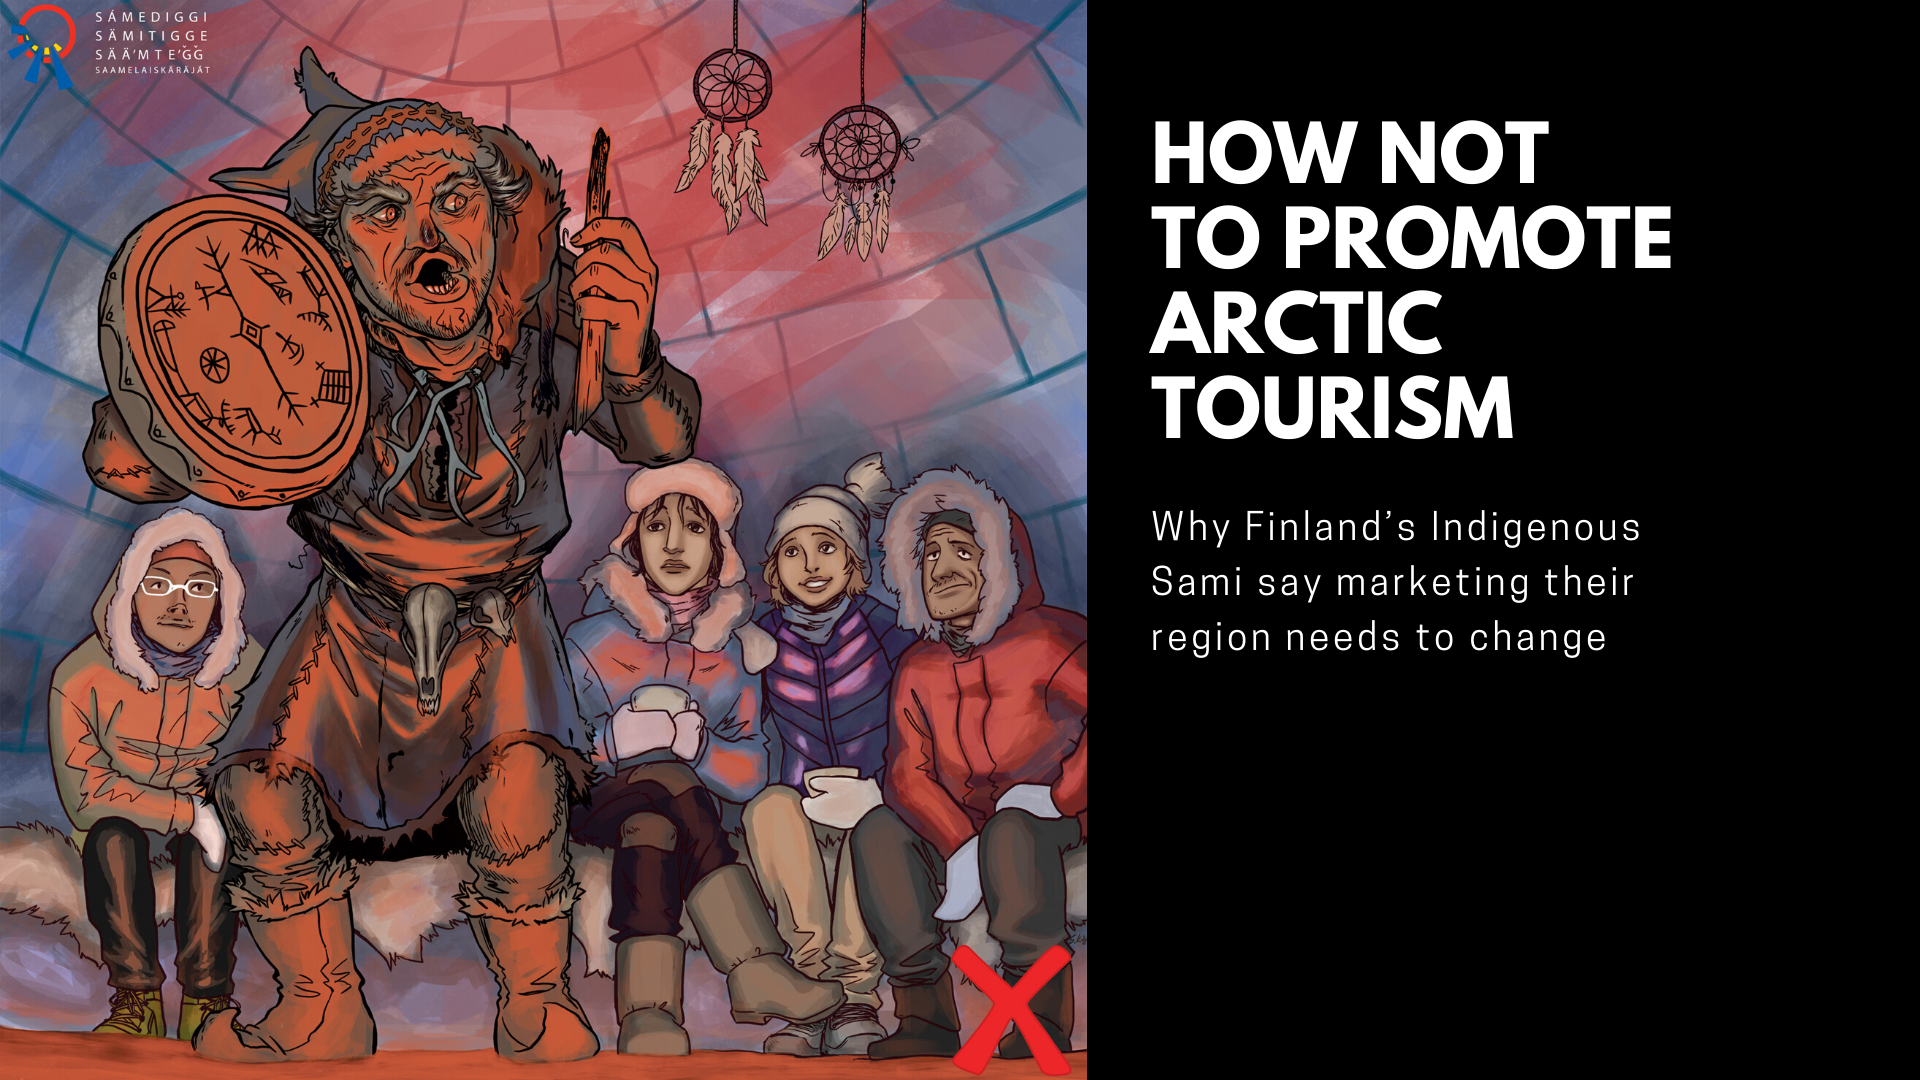 How not to promote arctic tourism